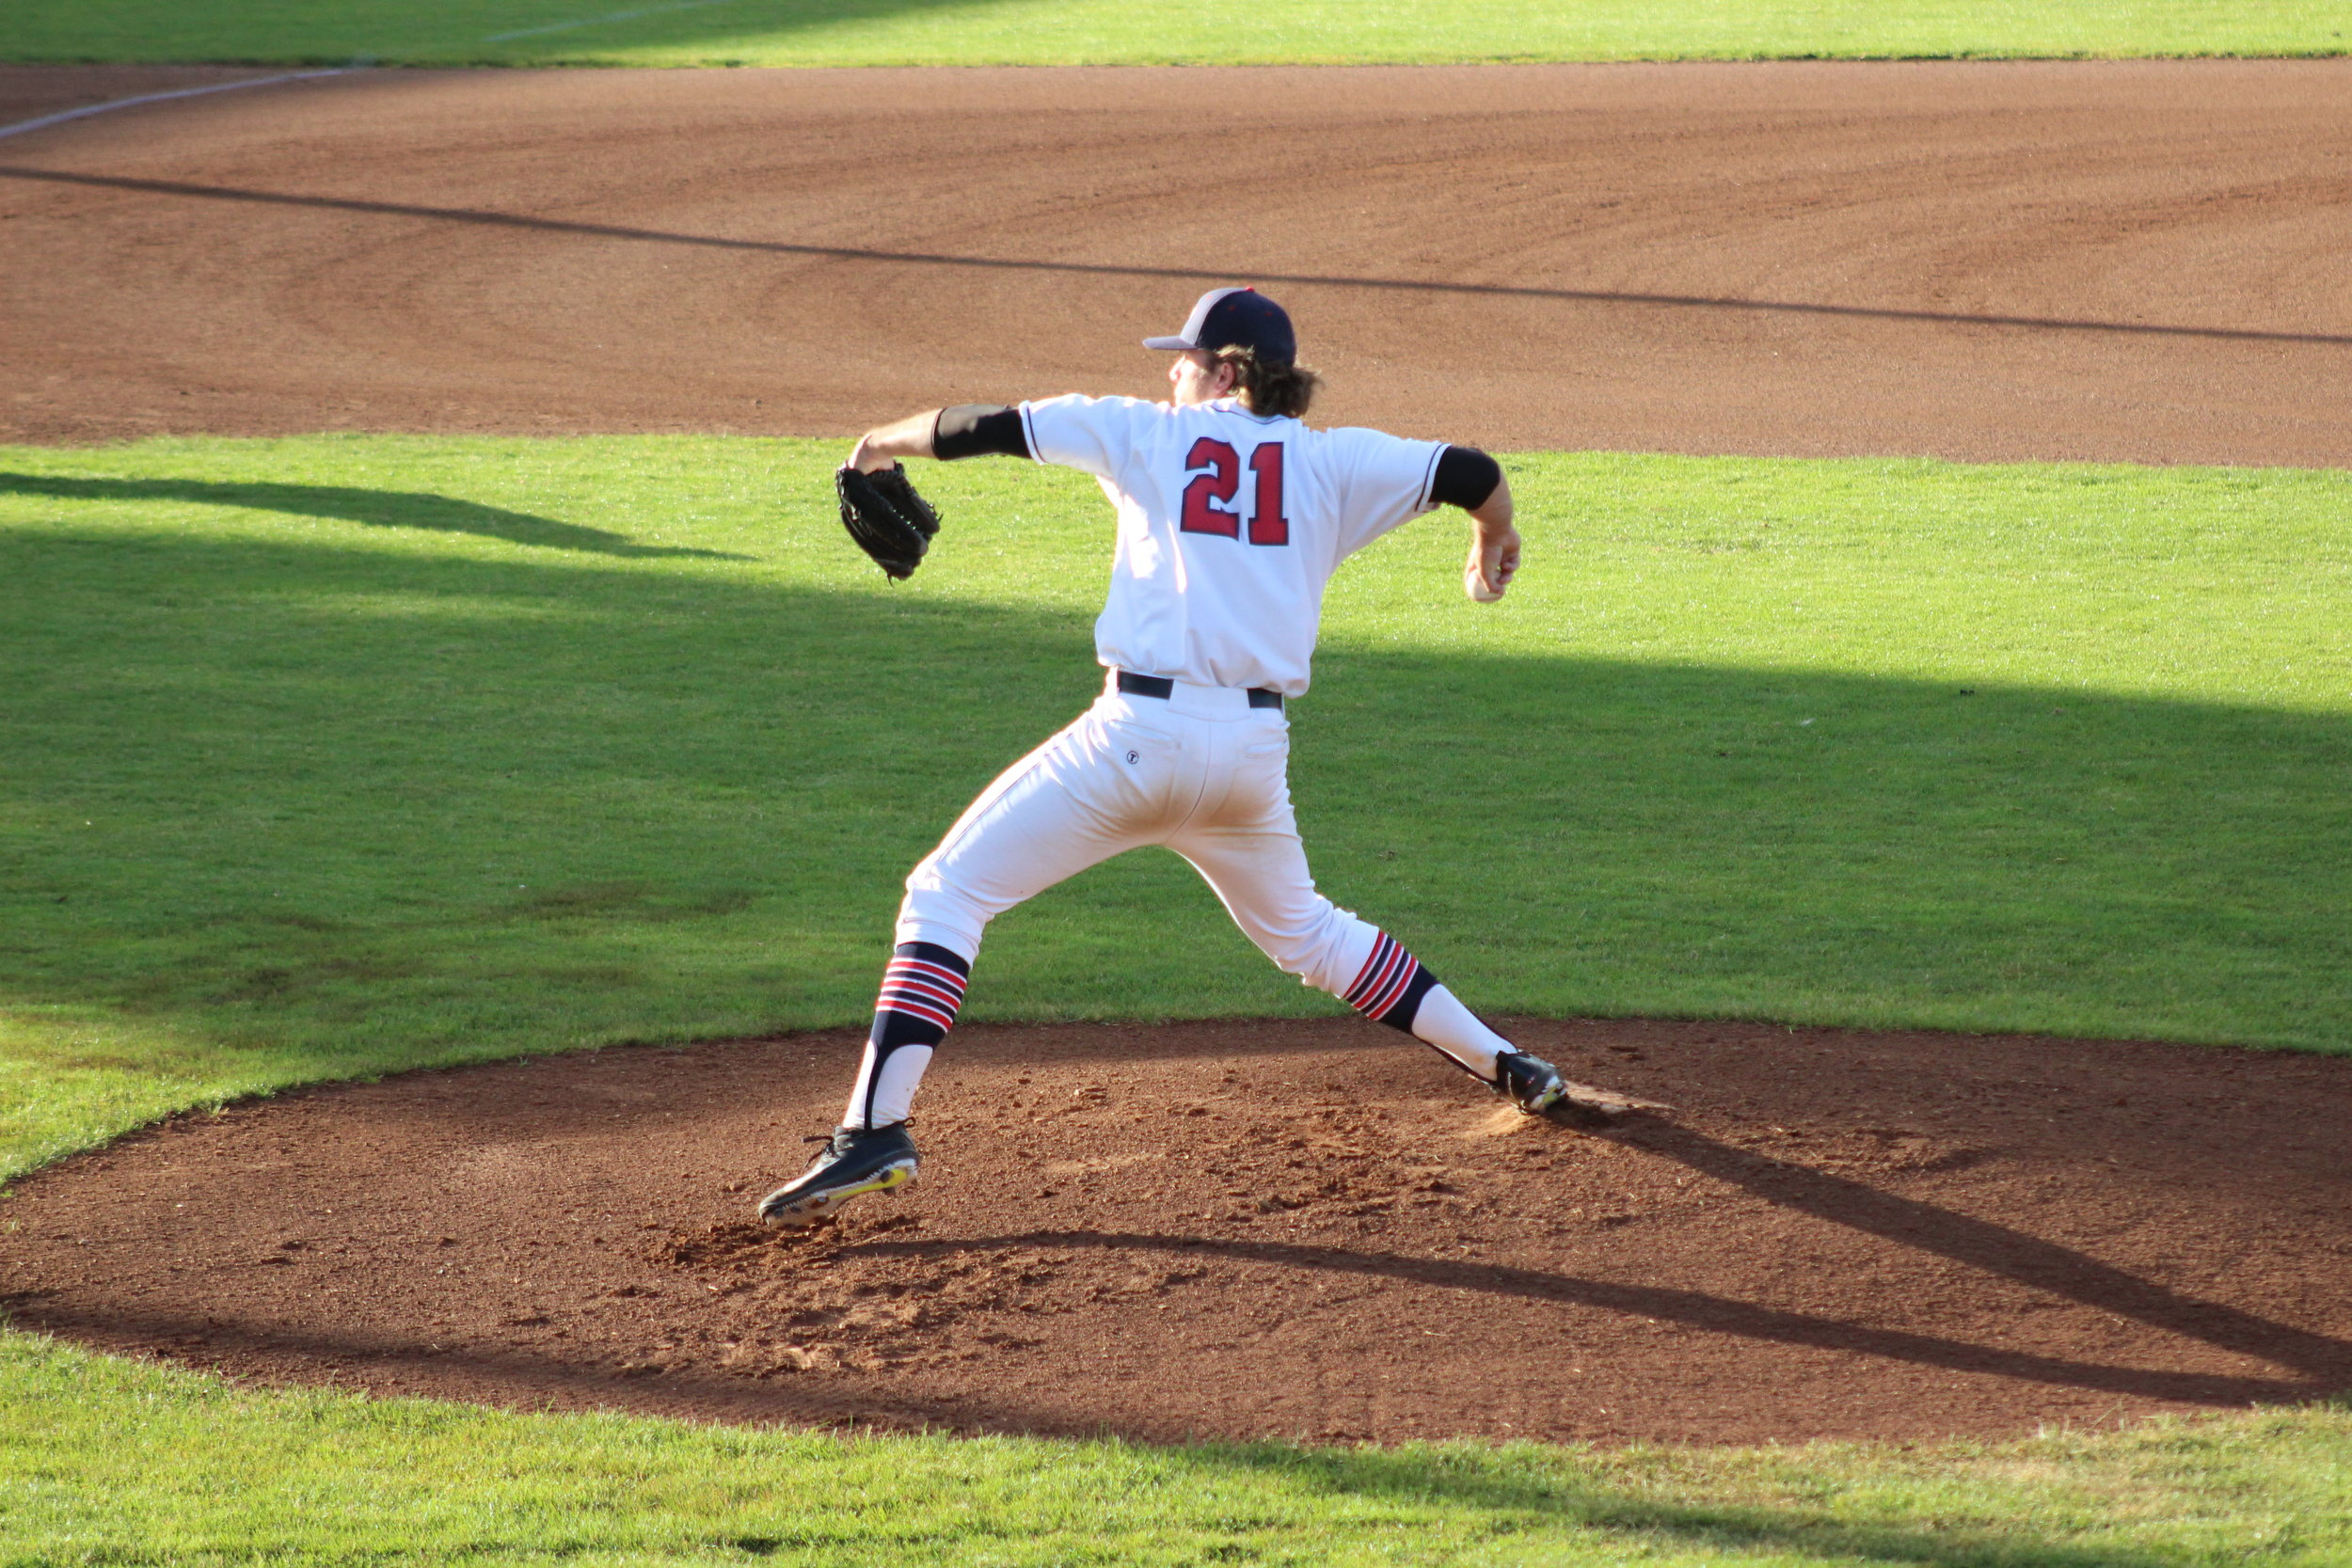 Current WCL Baseball wins leader, Collin Maier (5-1) will get the start for the Wenatchee AppleSox, Sunday, July 9 against the Kelowna Falcons.